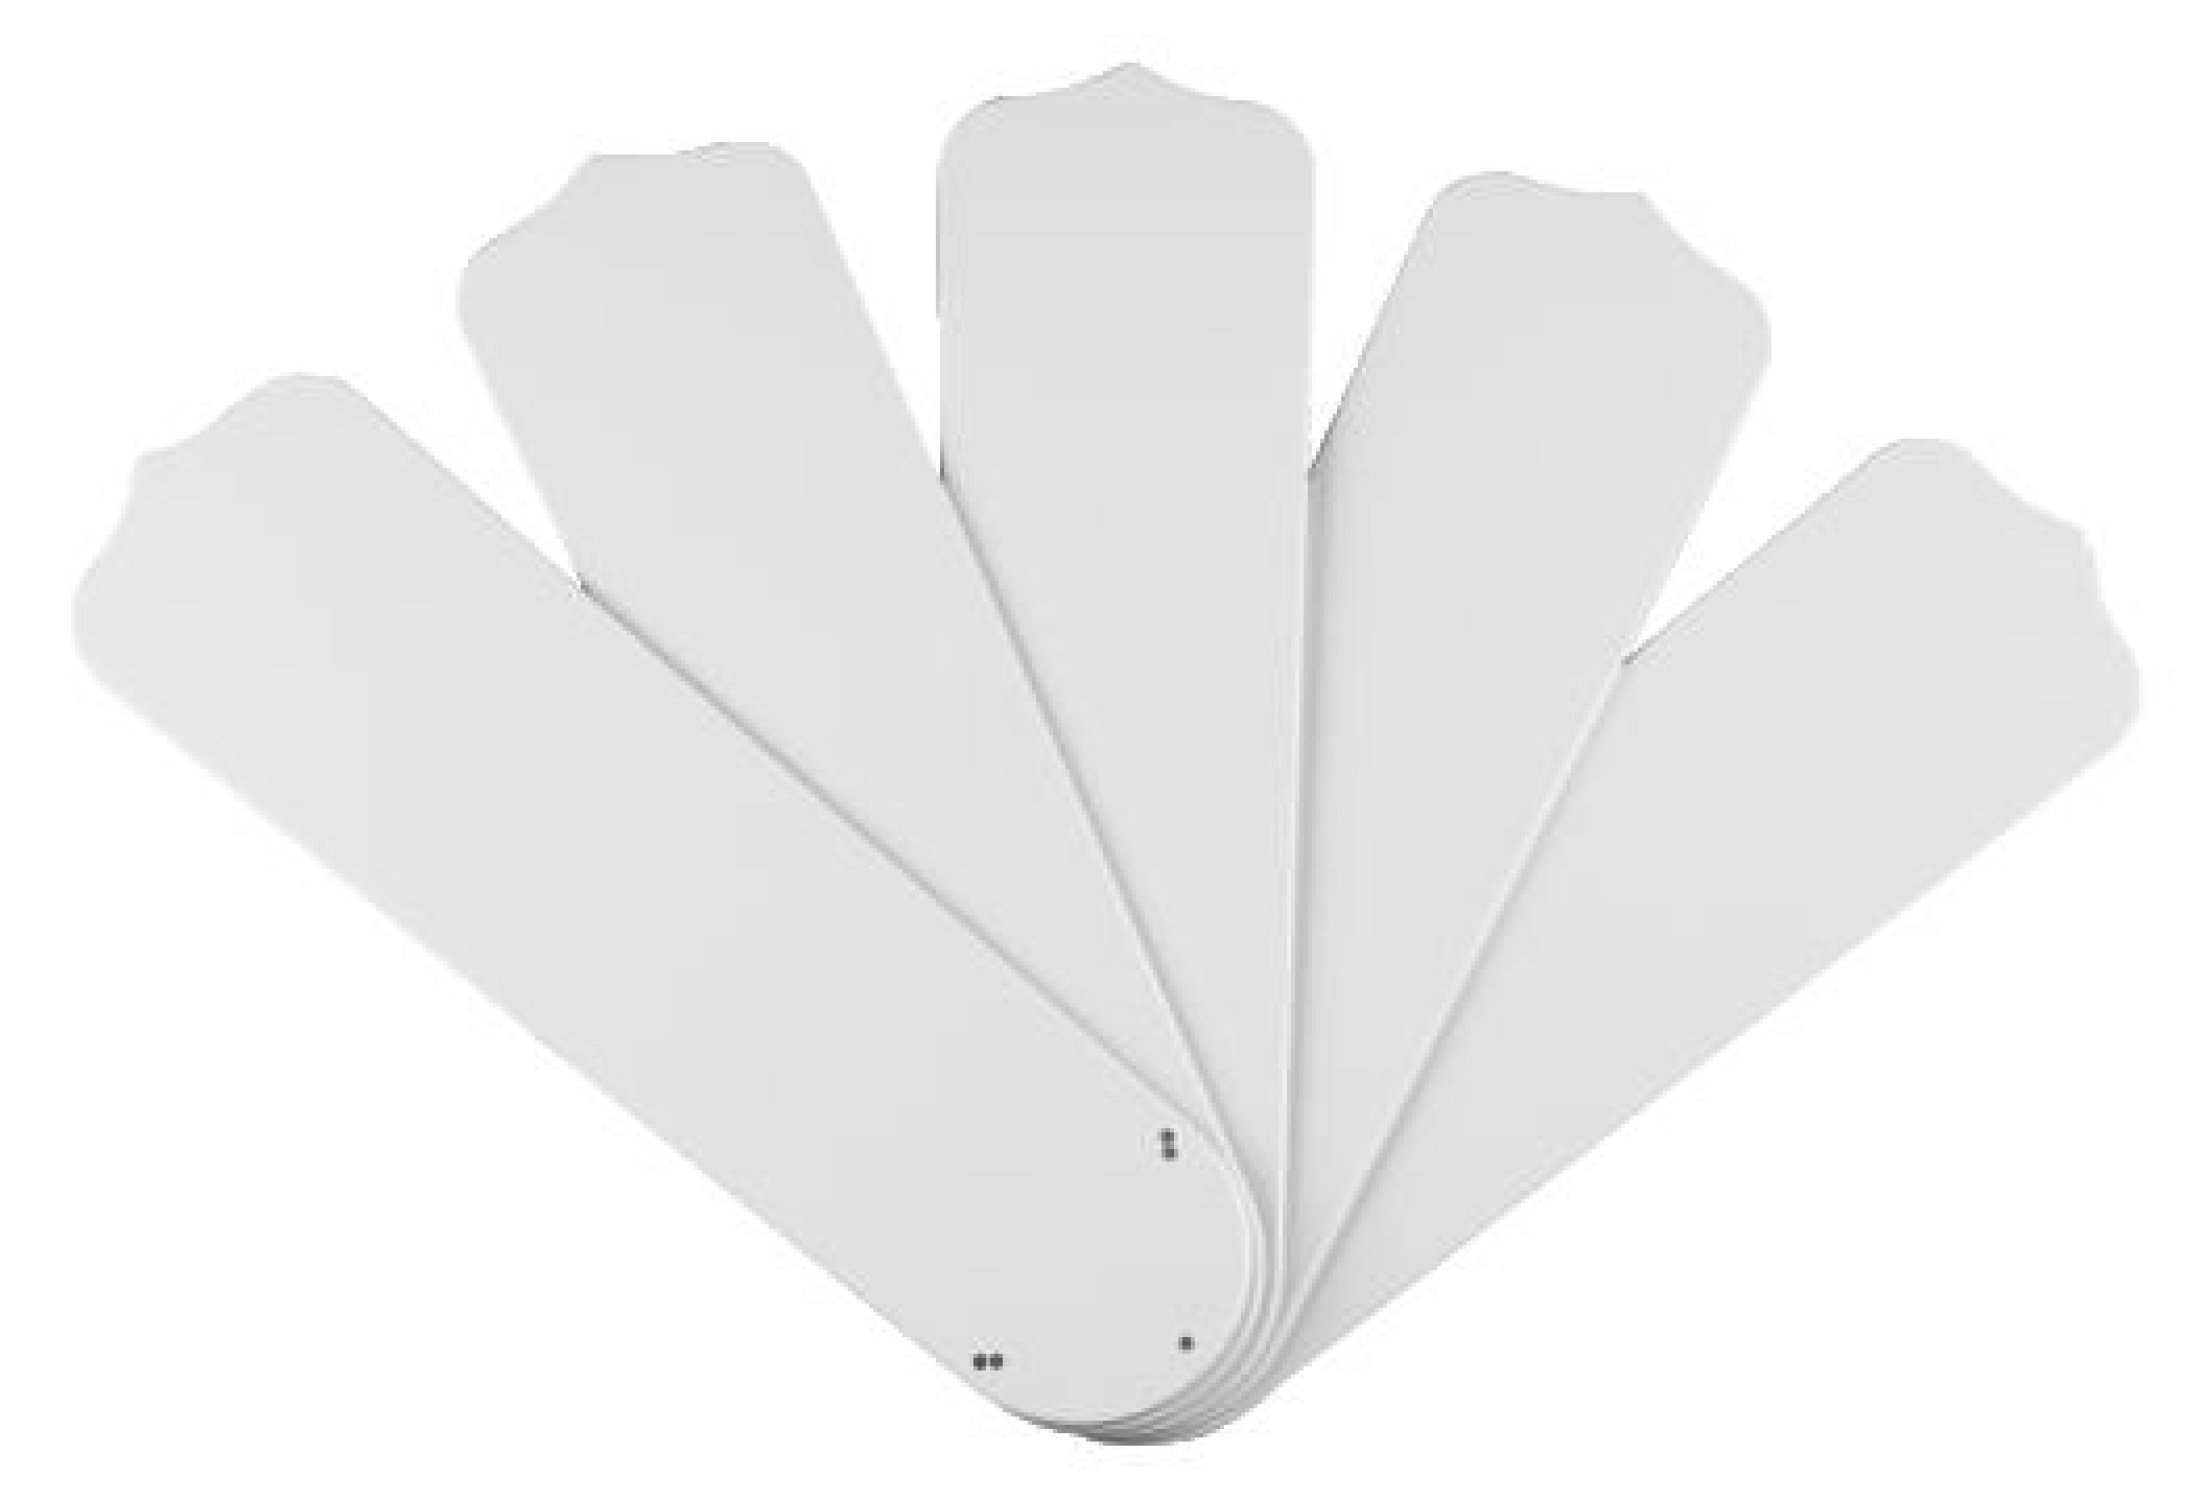 Westinghouse Lighting 7741400 52-Inch White Outdoor Replacement Fan Blades, Five-Pack